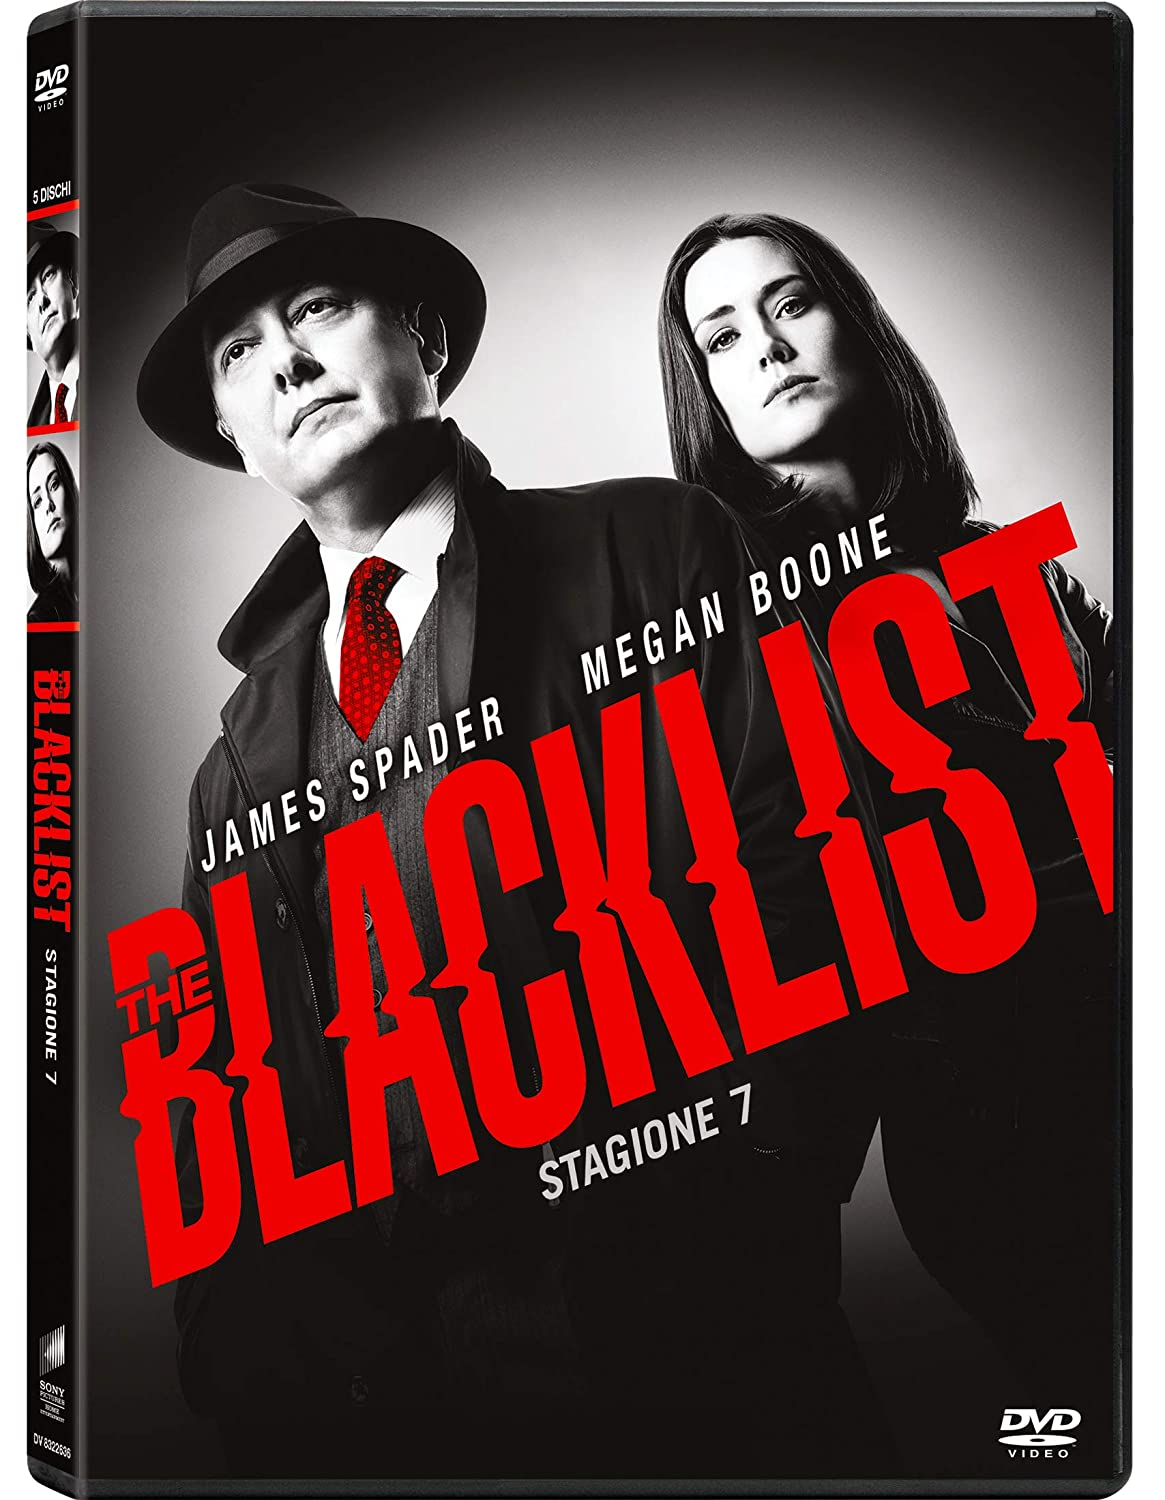 COF.THE BLACKLIST - STAGIONE 07 (5 DVD) (DVD)